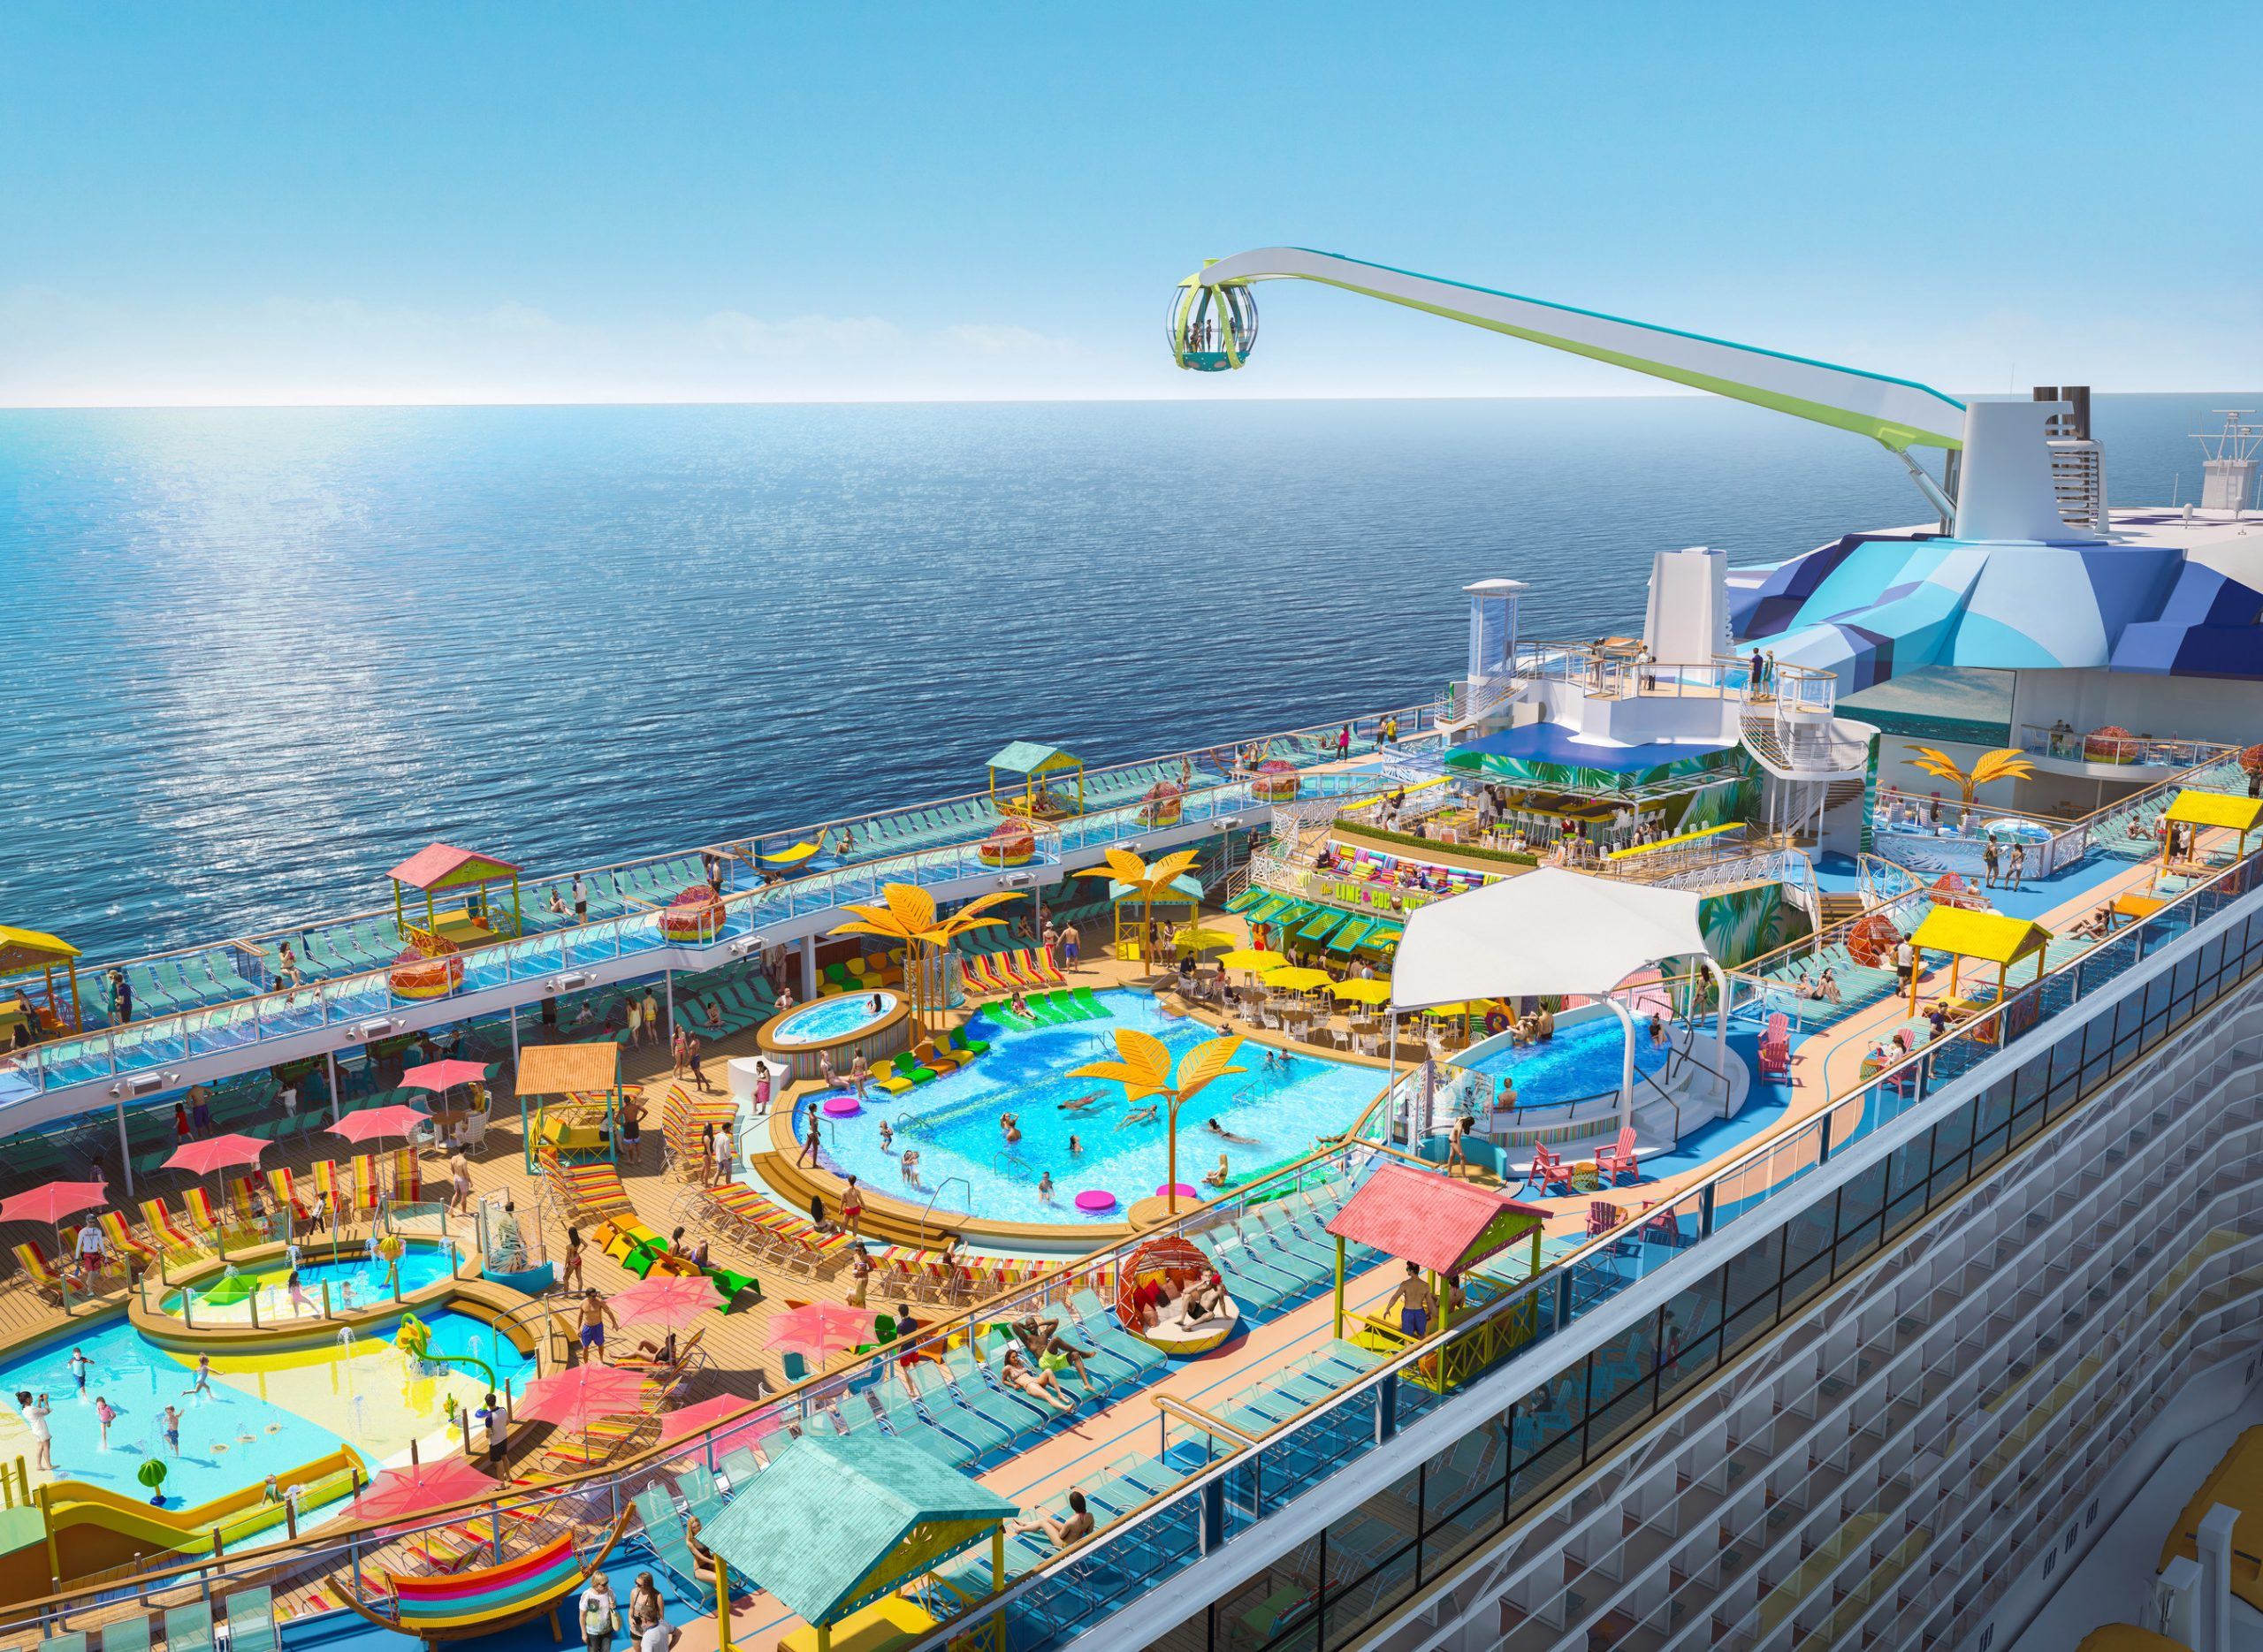 Debuting May 2021 in Haifa, Israel for her inaugural summer season, Odyssey of the Seas will tout a vibrant, two-level pool deck, where two resort-style pools, a kids aqua park and four whirlpools are surrounded by shady casitas and hammocks, perfect for enjoying the sea breeze under the sun and stars.